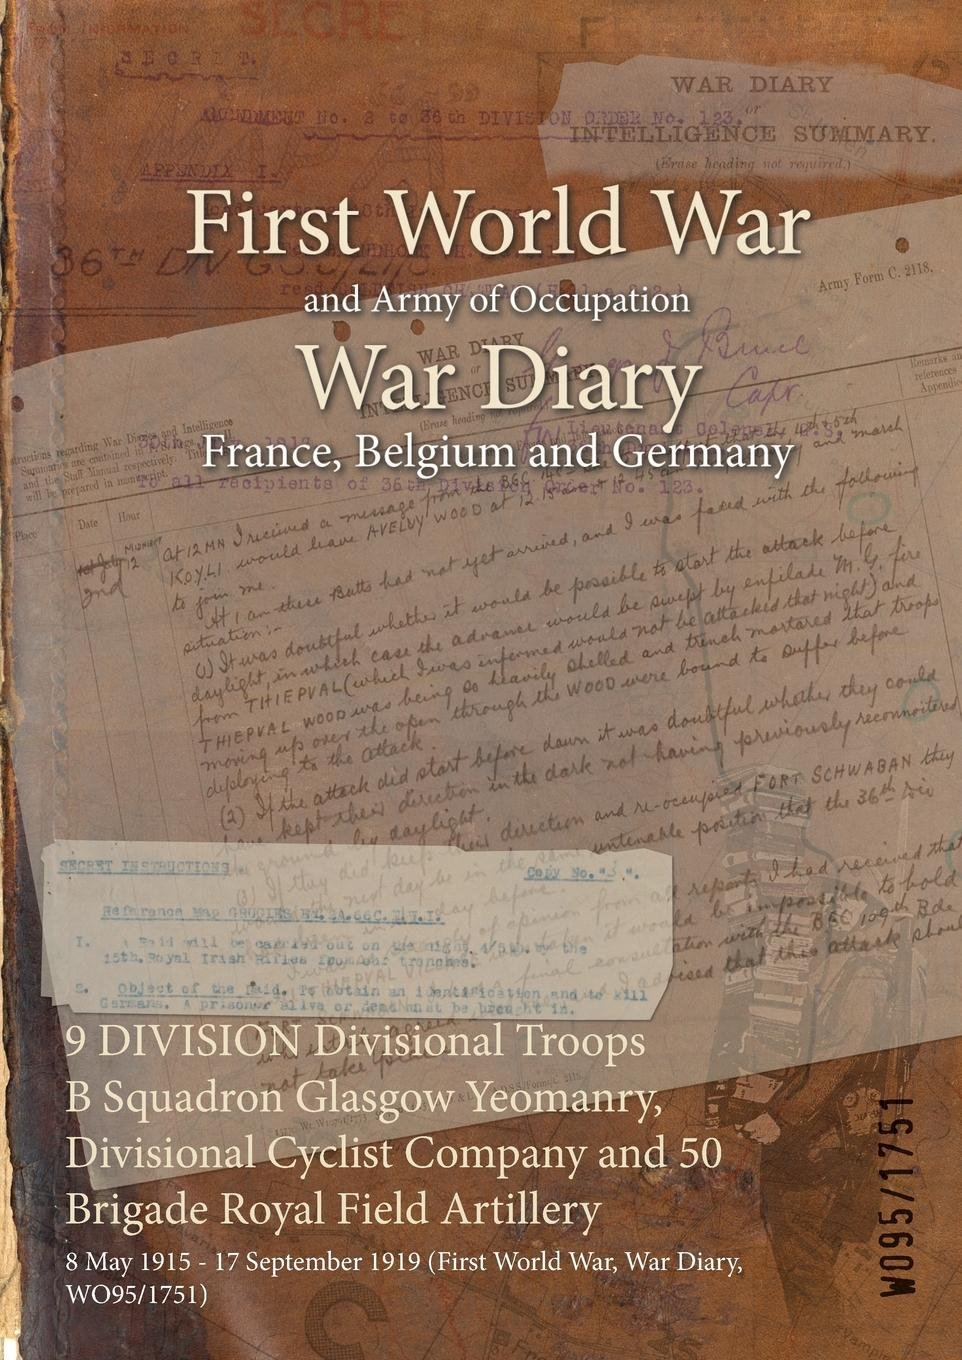 Download 9 Division Divisional Troops B Squadron Glasgow Yeomanry, Divisional Cyclist Company and 50 Brigade Royal Field Artillery: 8 May 1915 - 17 September 1919 (First World War, War Diary, Wo95/1751) pdf